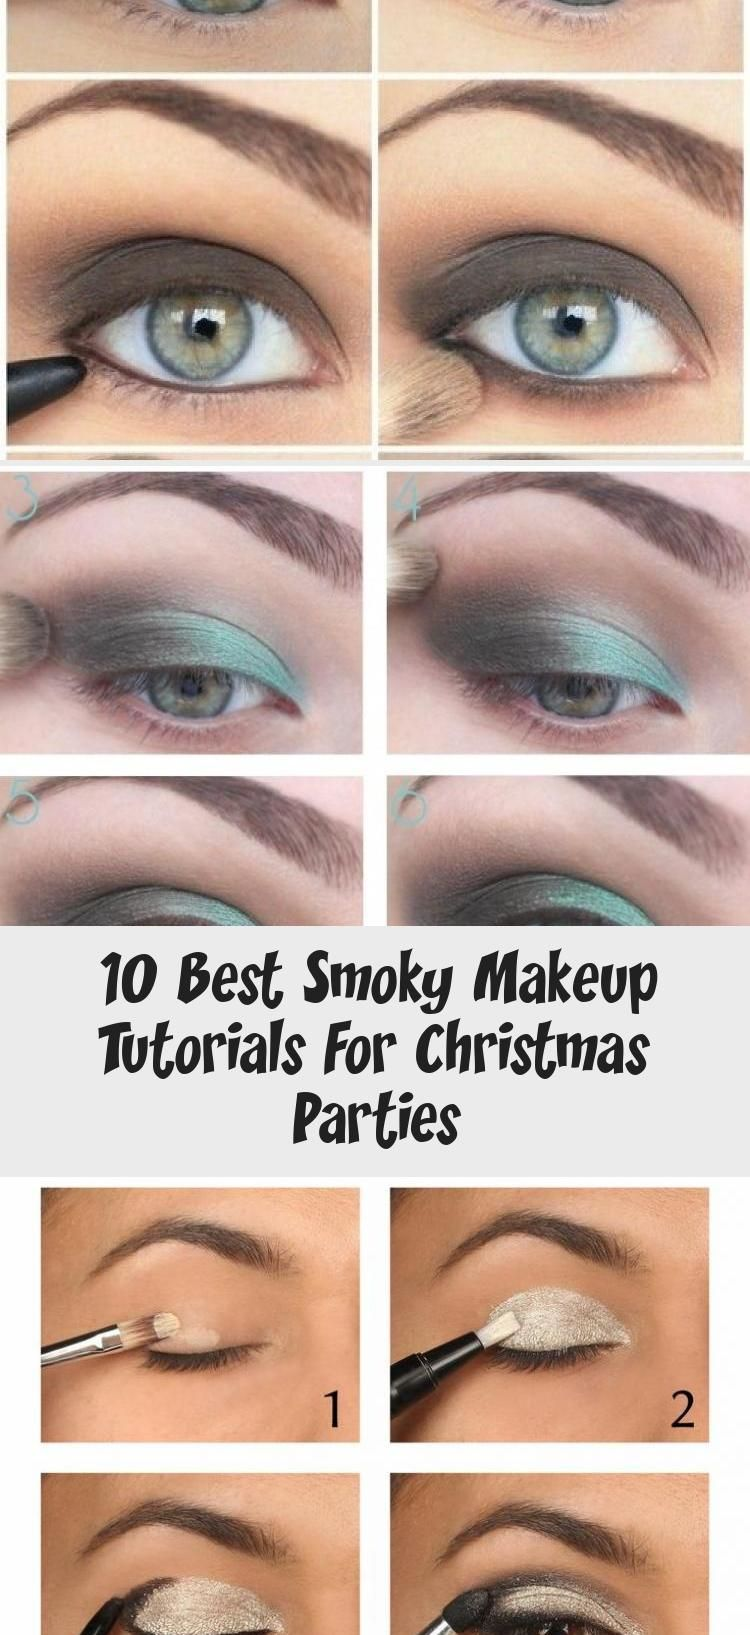 Photo of 10 Best Smoky Makeup Tutorials For Christmas Parties